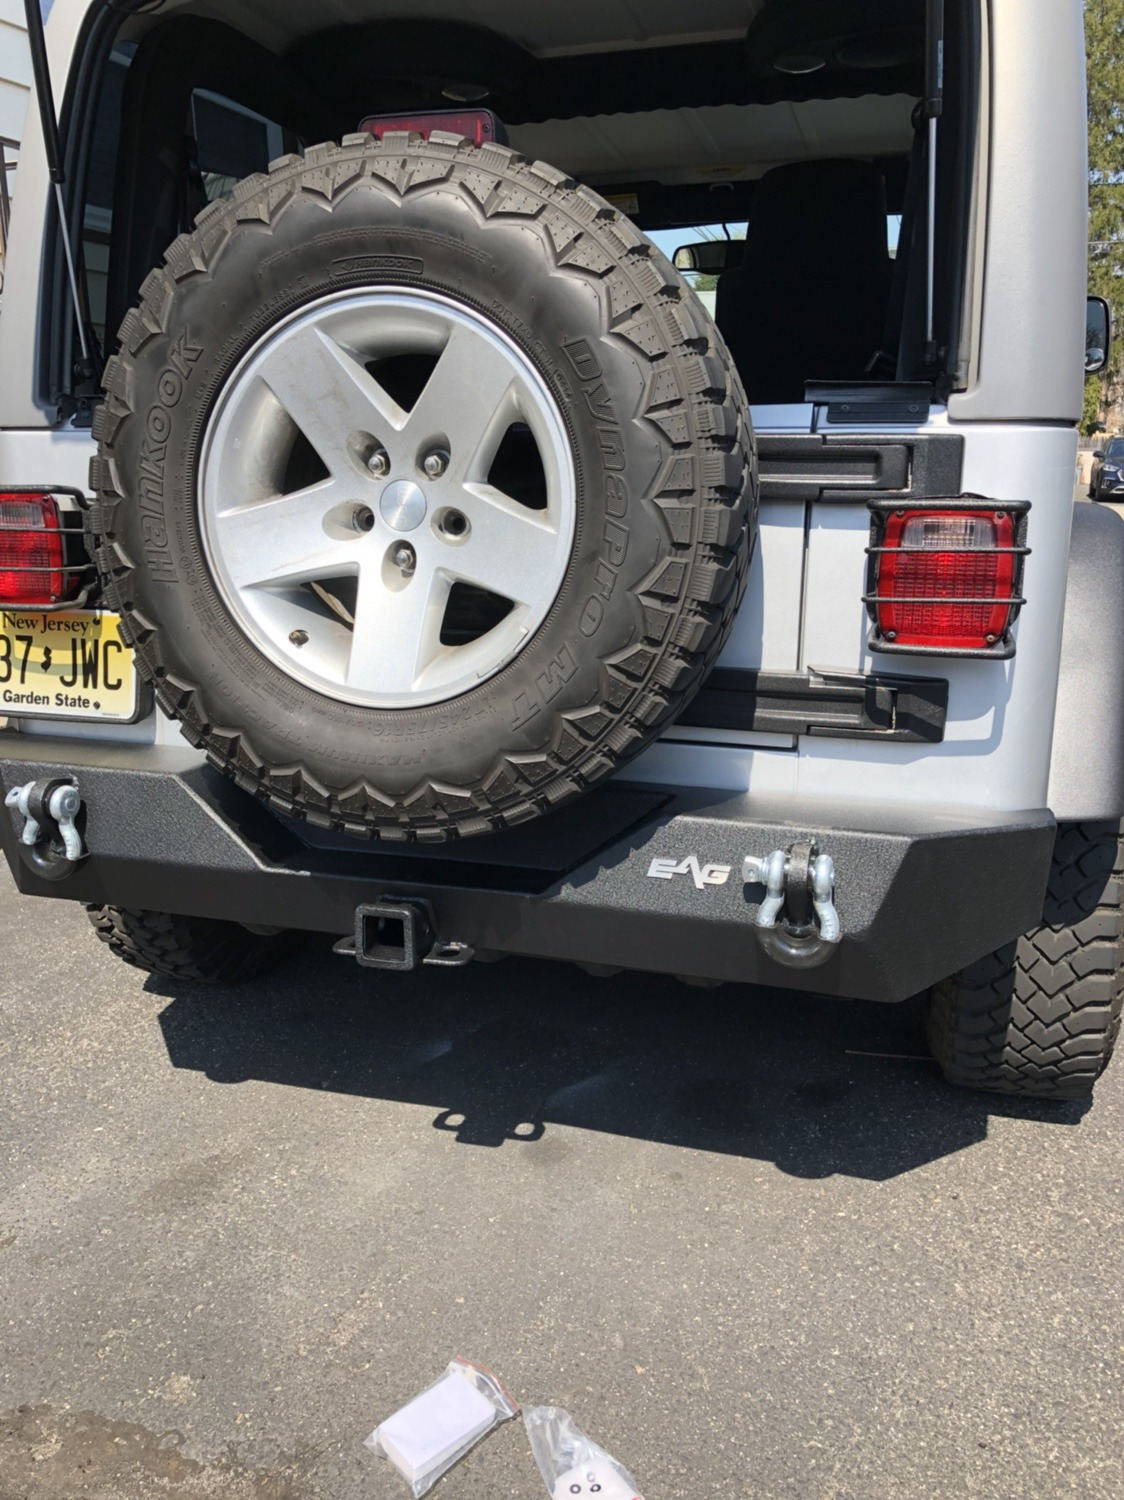 Eag Jeep Parts : parts, Bumper, Review, Wrangler, Forum